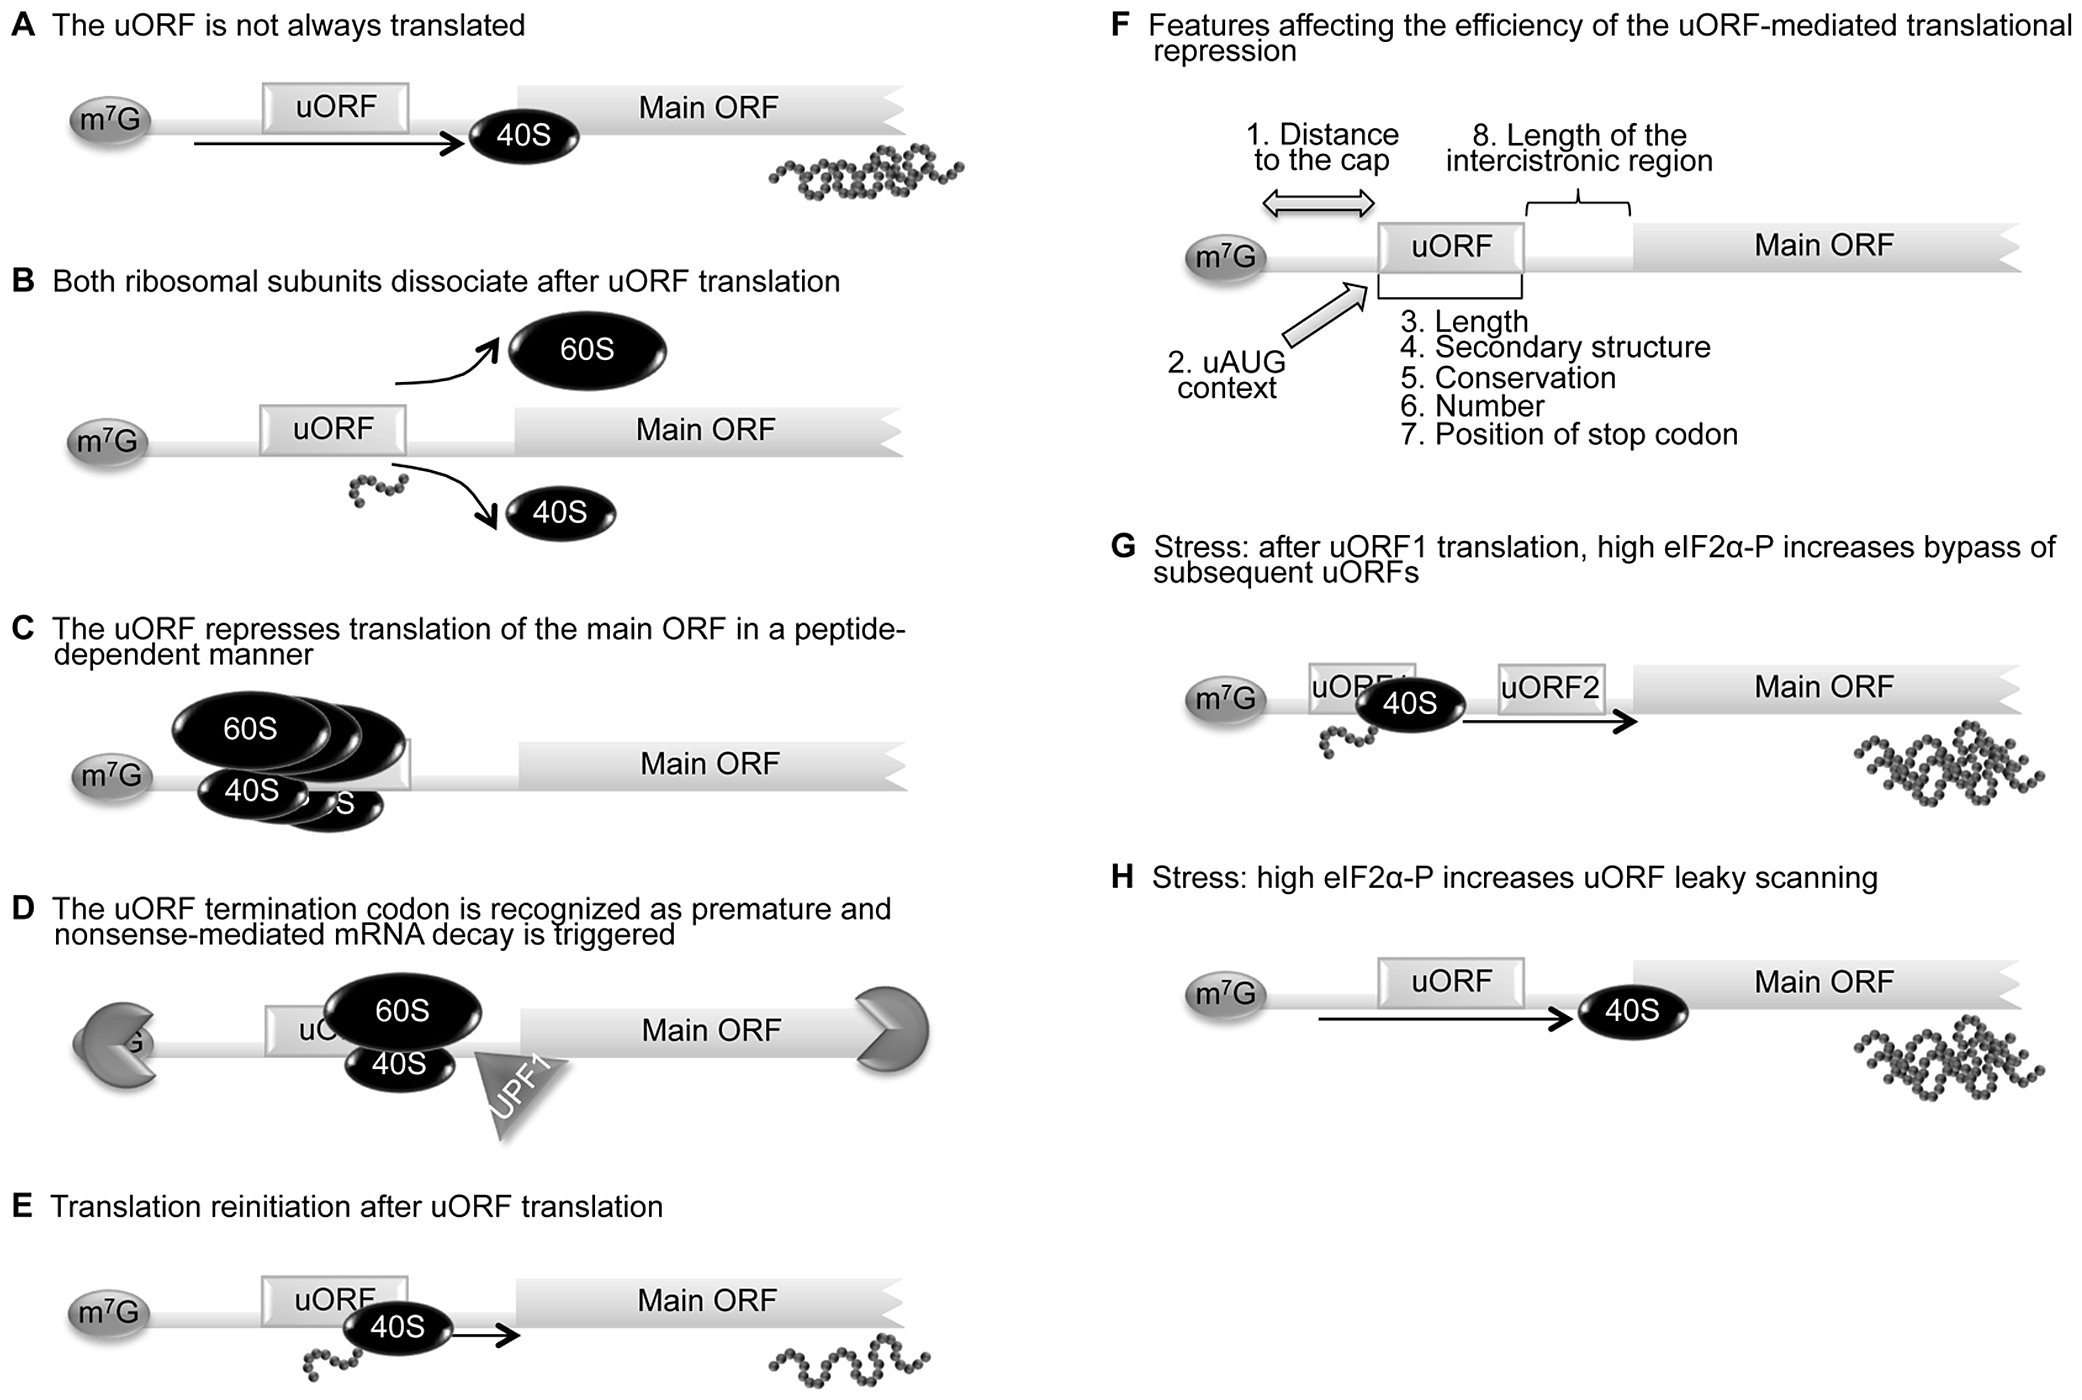 uORF-mediated translational control can occur through different mechanisms.